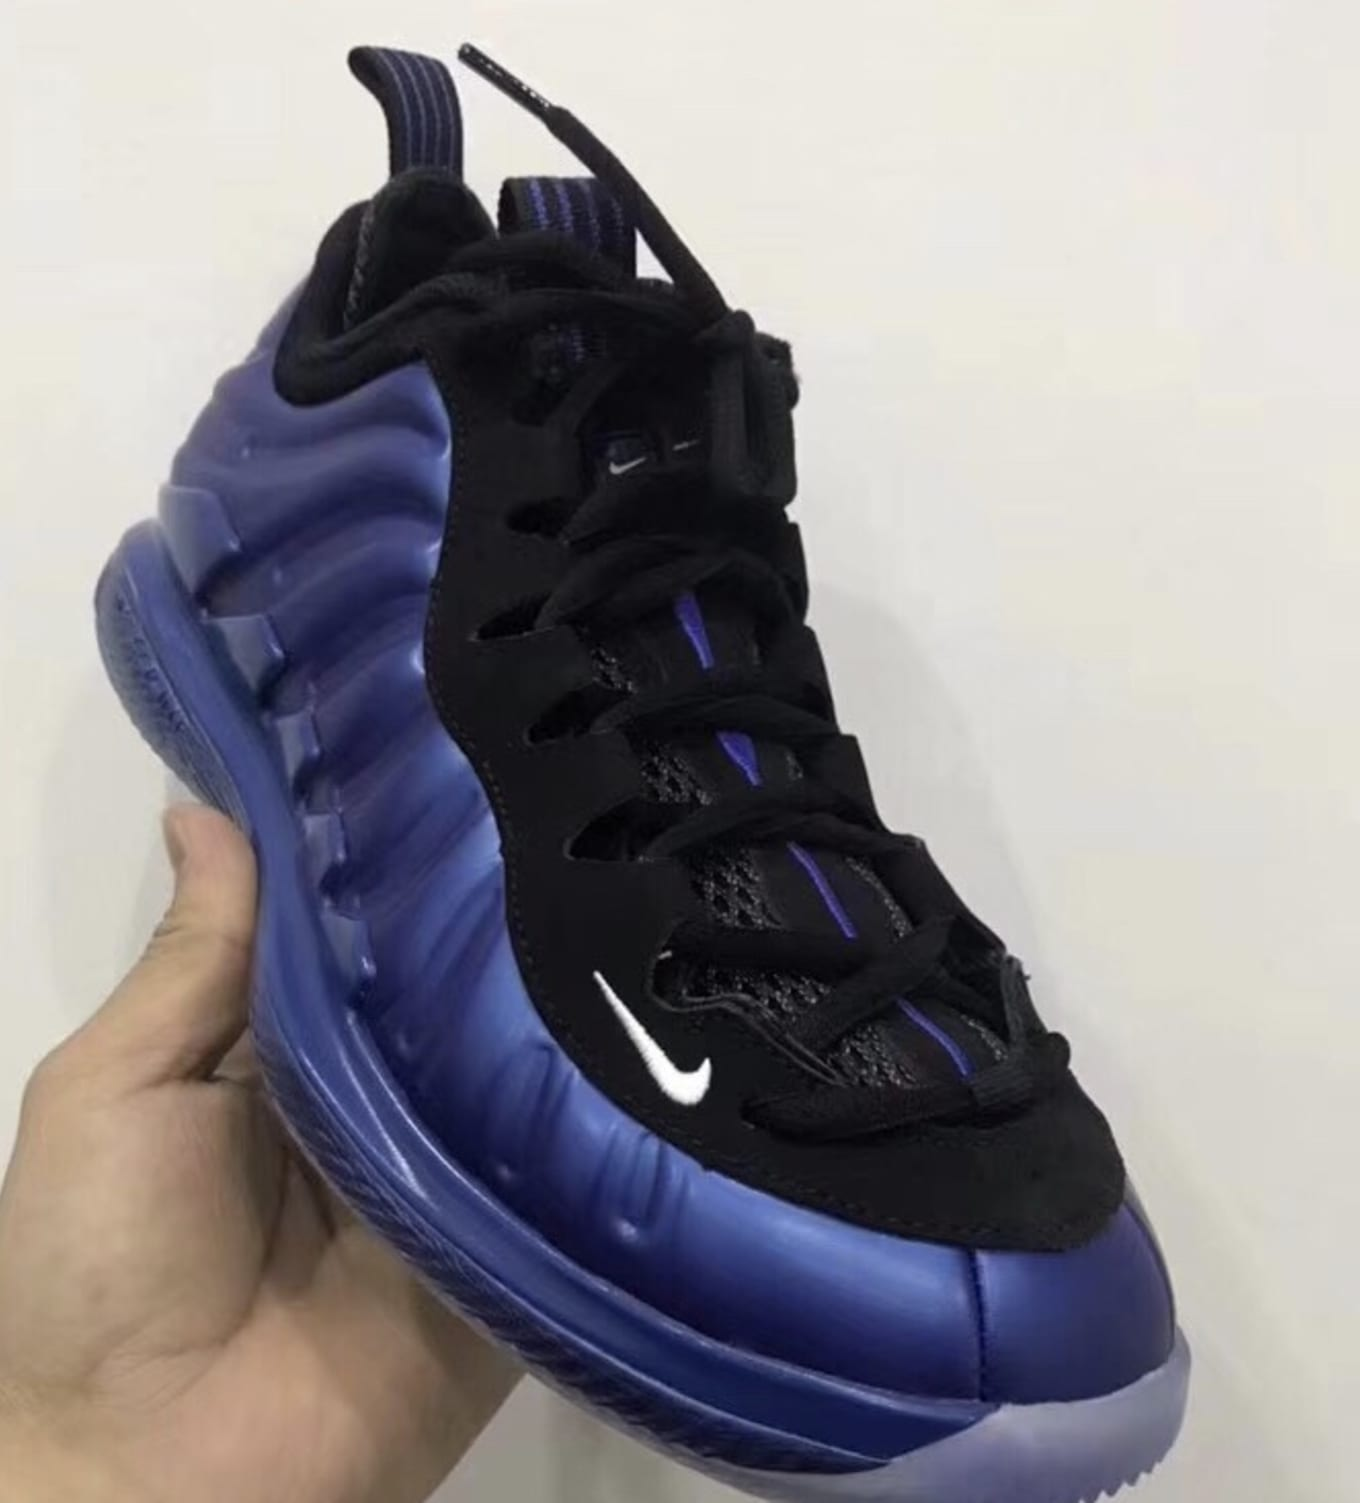 02a04f59c8 Nike Air Foamposite One x Zoom Vapor X Release Date | Sole Collector